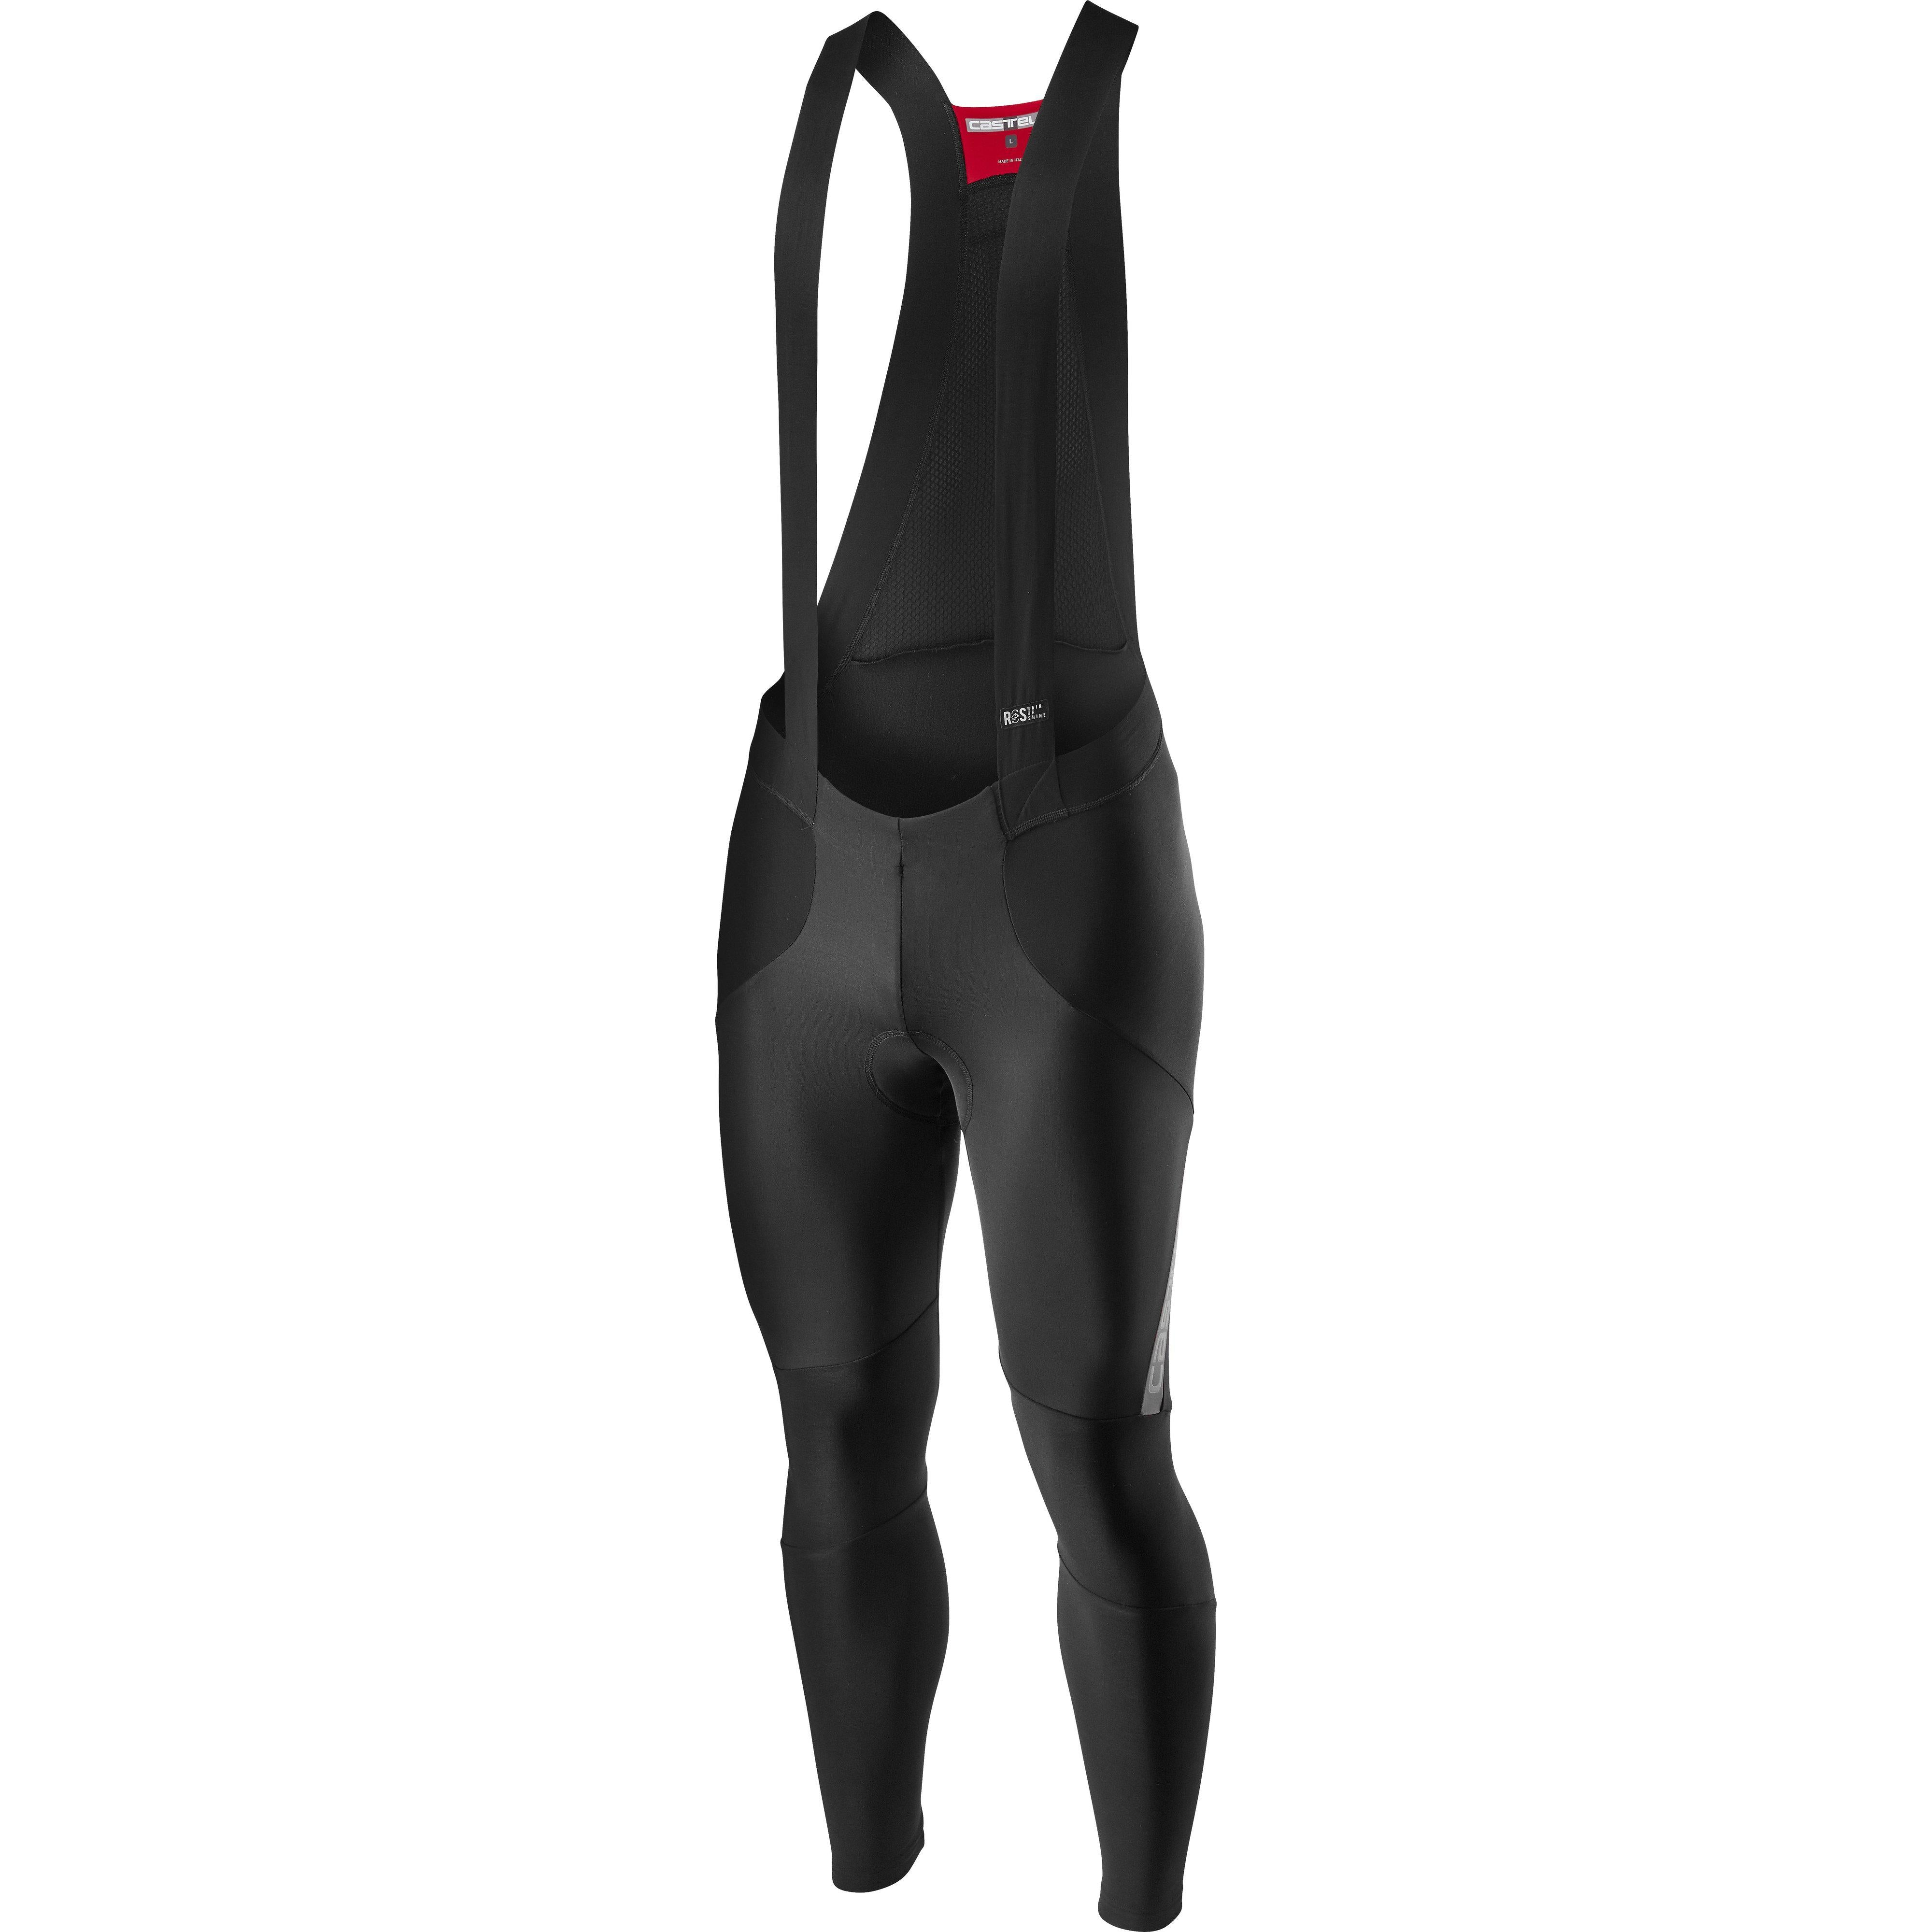 Castelli-Castelli Sorpasso RoS Bibtights-Black-S-CS205220102-saddleback-elite-performance-cycling